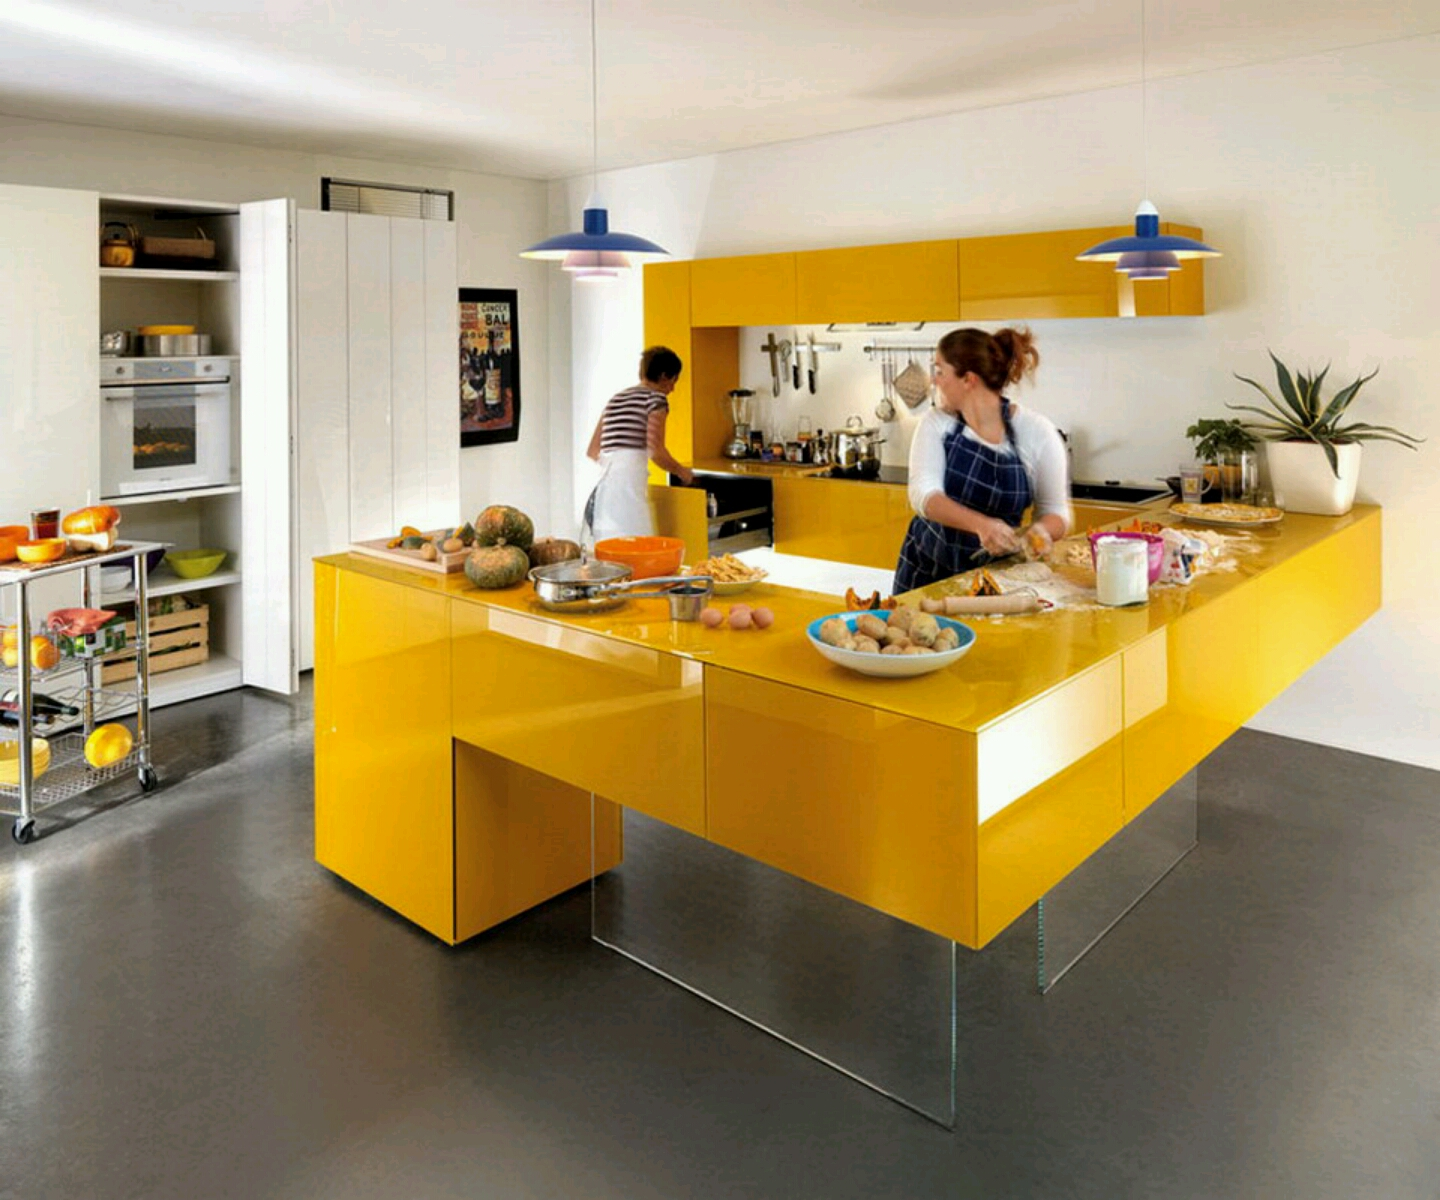 Modern kitchen cabinets designs ideas furniture gallery Modern kitchen design ideas